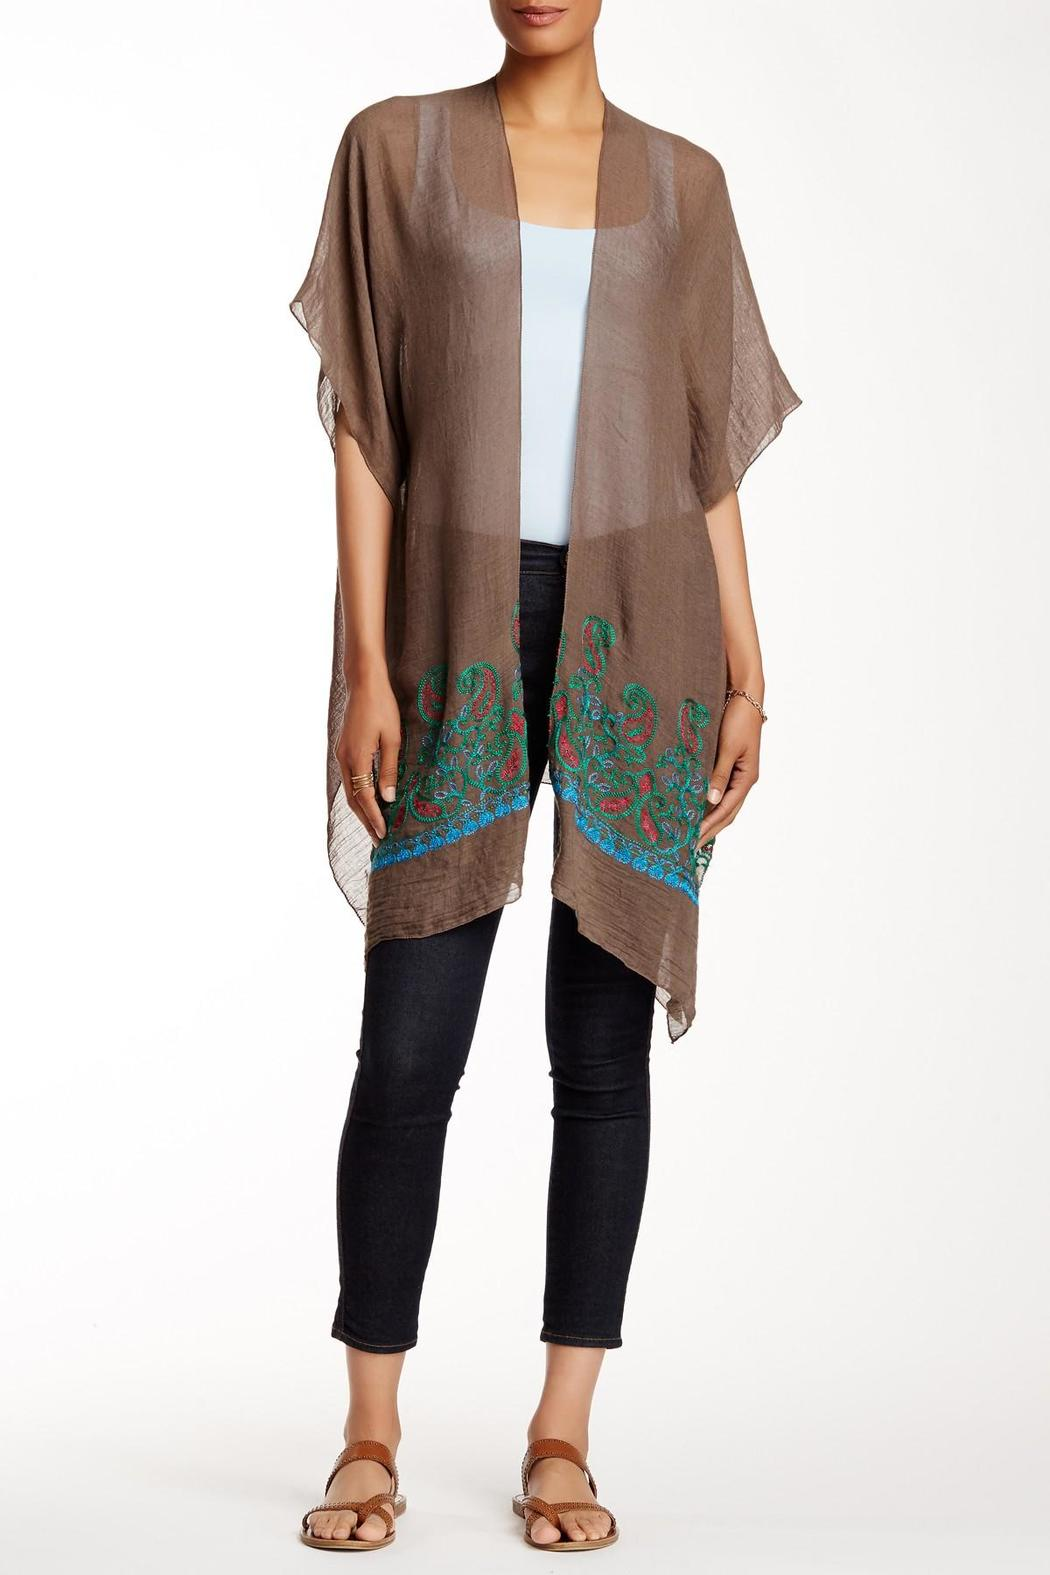 Rikka Sheer Brown Long Cardigan from San Diego by Venezia Cashmere ...